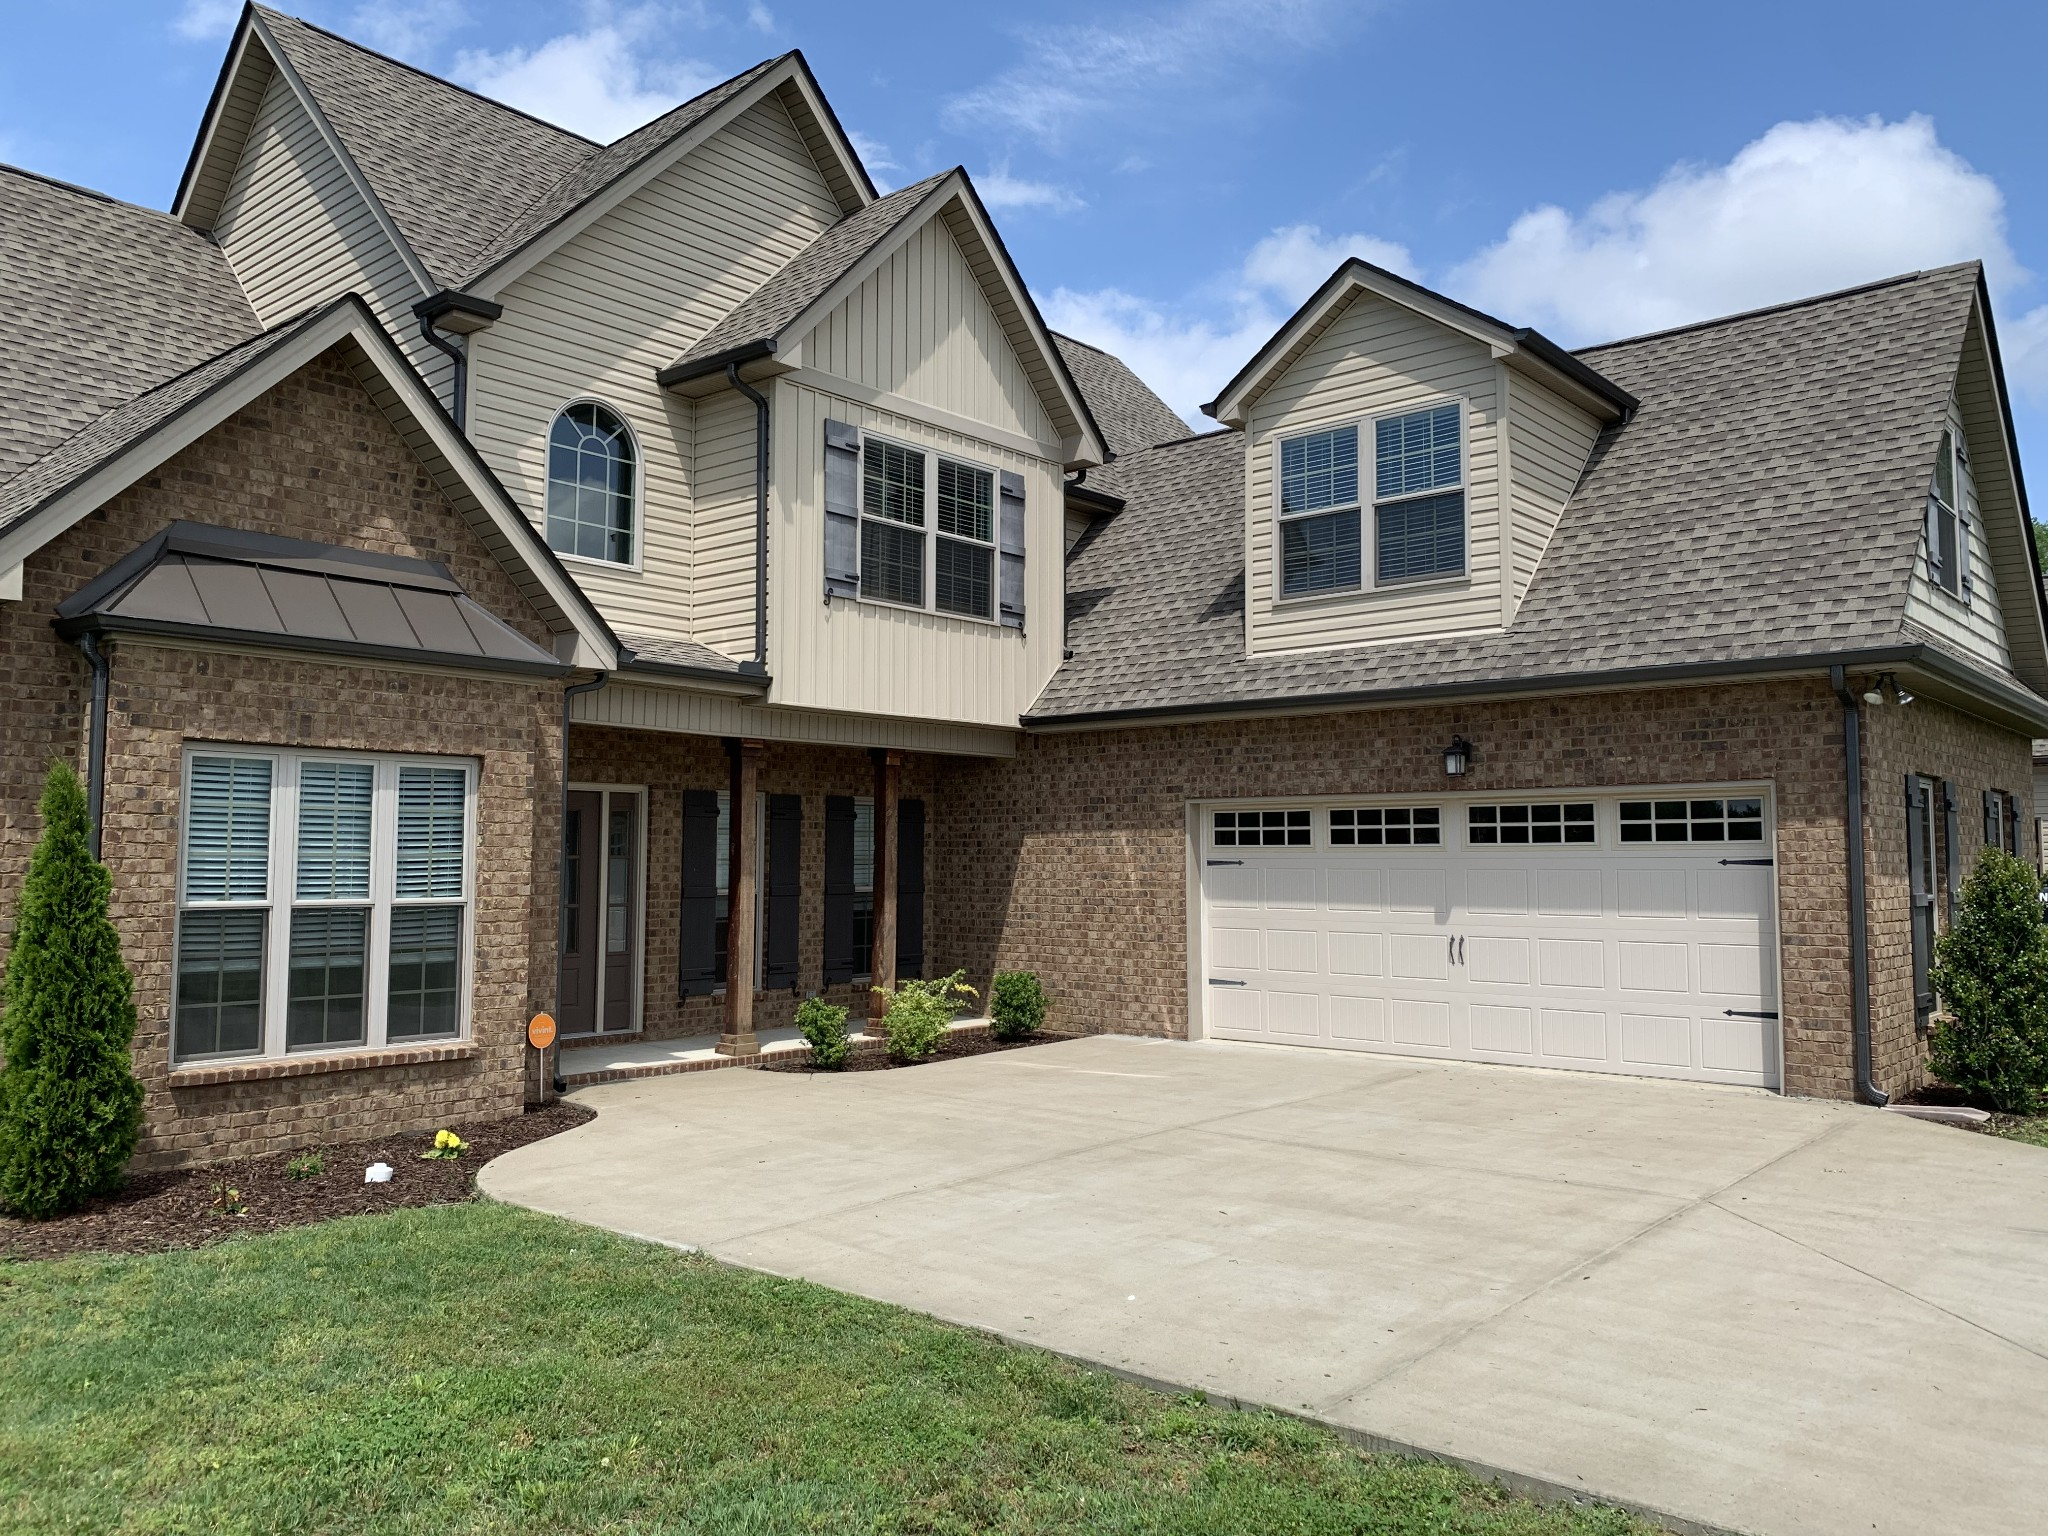 Well maintained home built in 2016. Vaulted ceilings, open floor plan and large bonus room